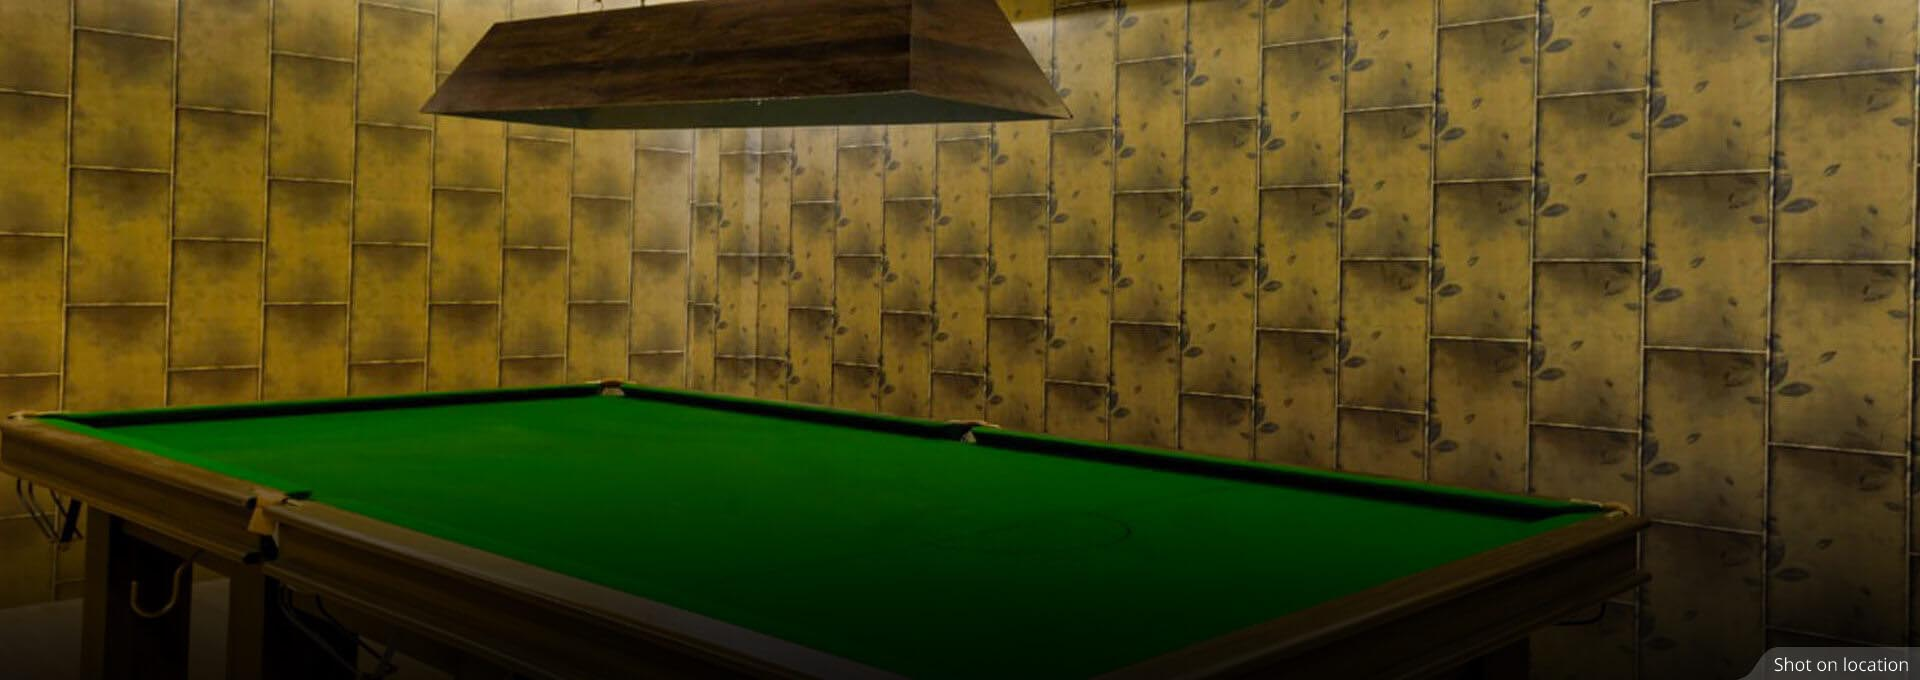 Billiards in Queensgate by House of Hirandani in Bannerghatta, Bengaluru